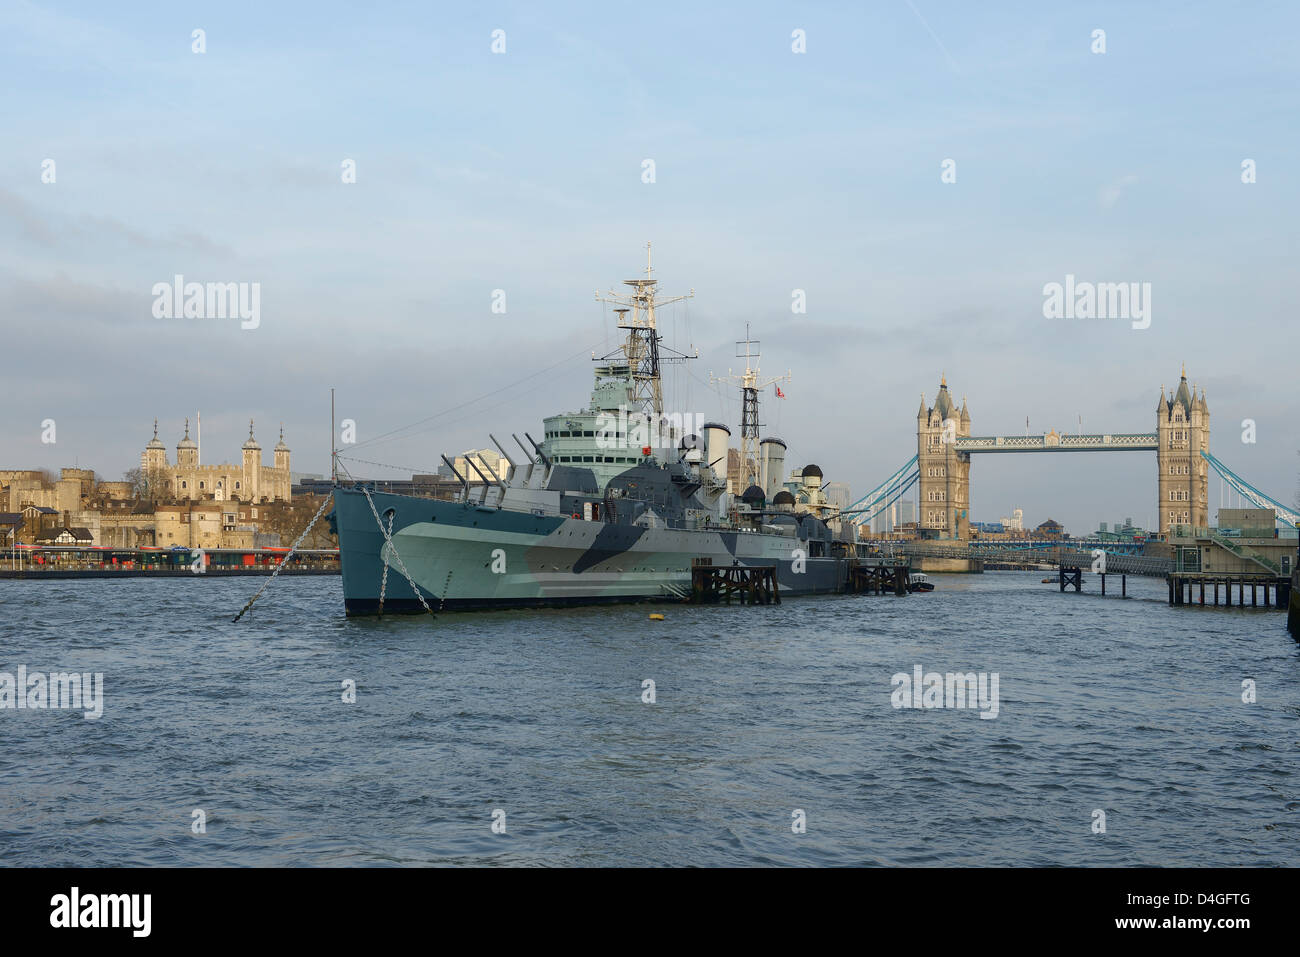 The Tower of London HMS Belfast and Tower Bridge London UK - Stock Image